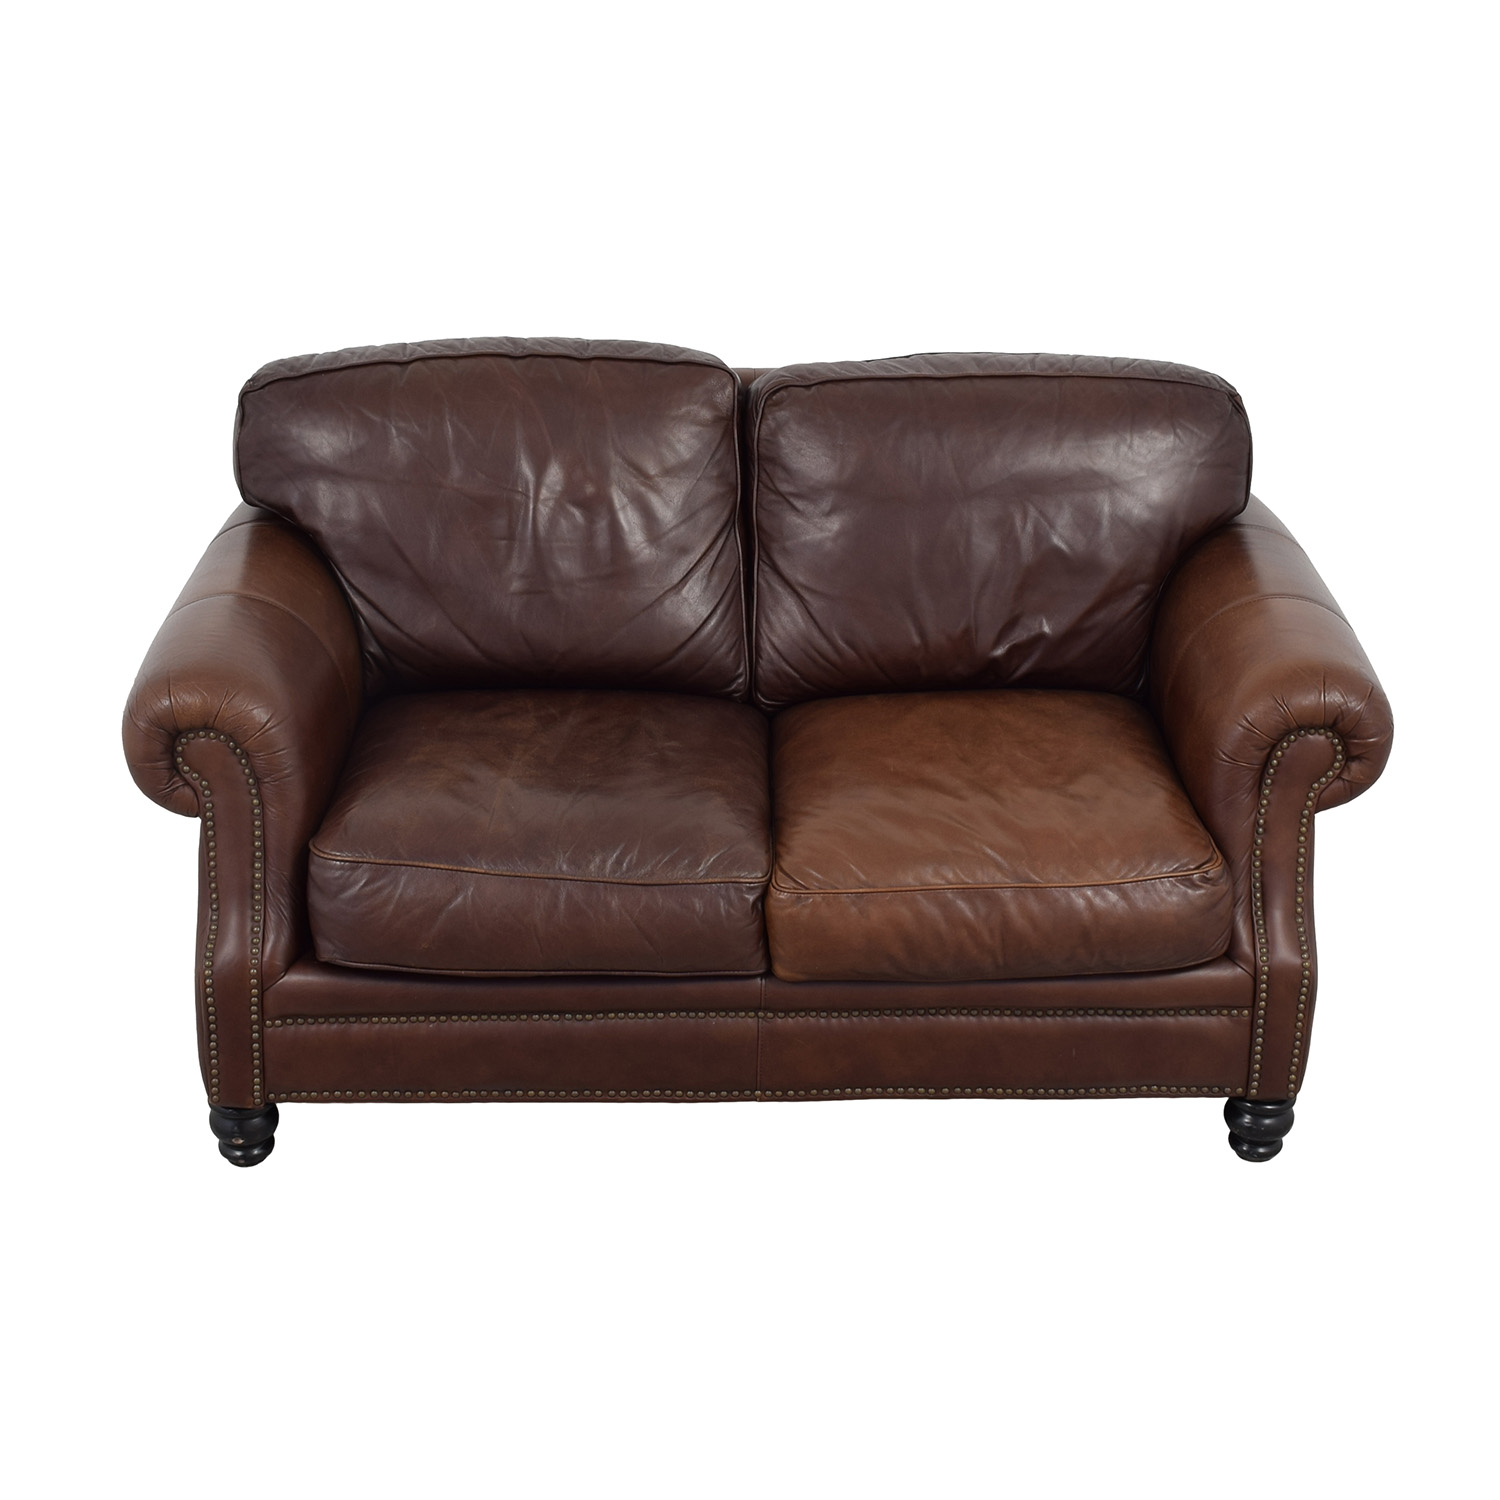 Bloomingdales Bloomingdales Brown Leather Loveseat price